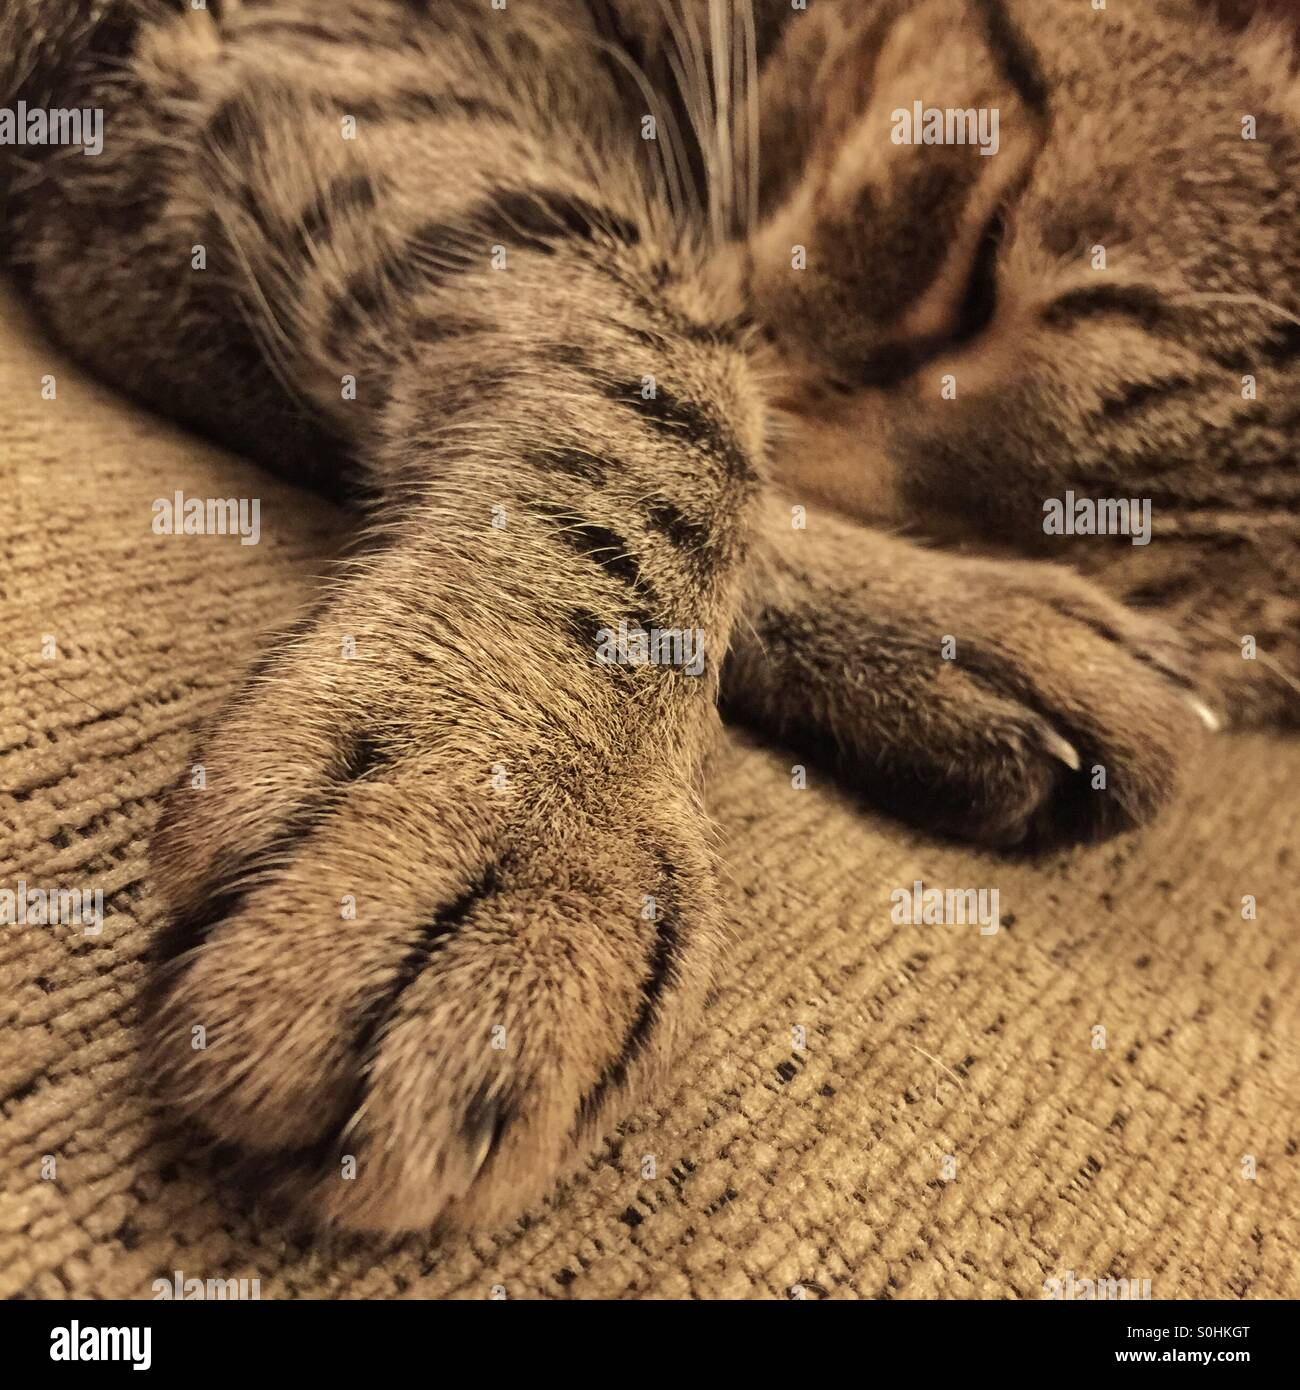 tabby-cat-sleeping-with-paws-outstretche